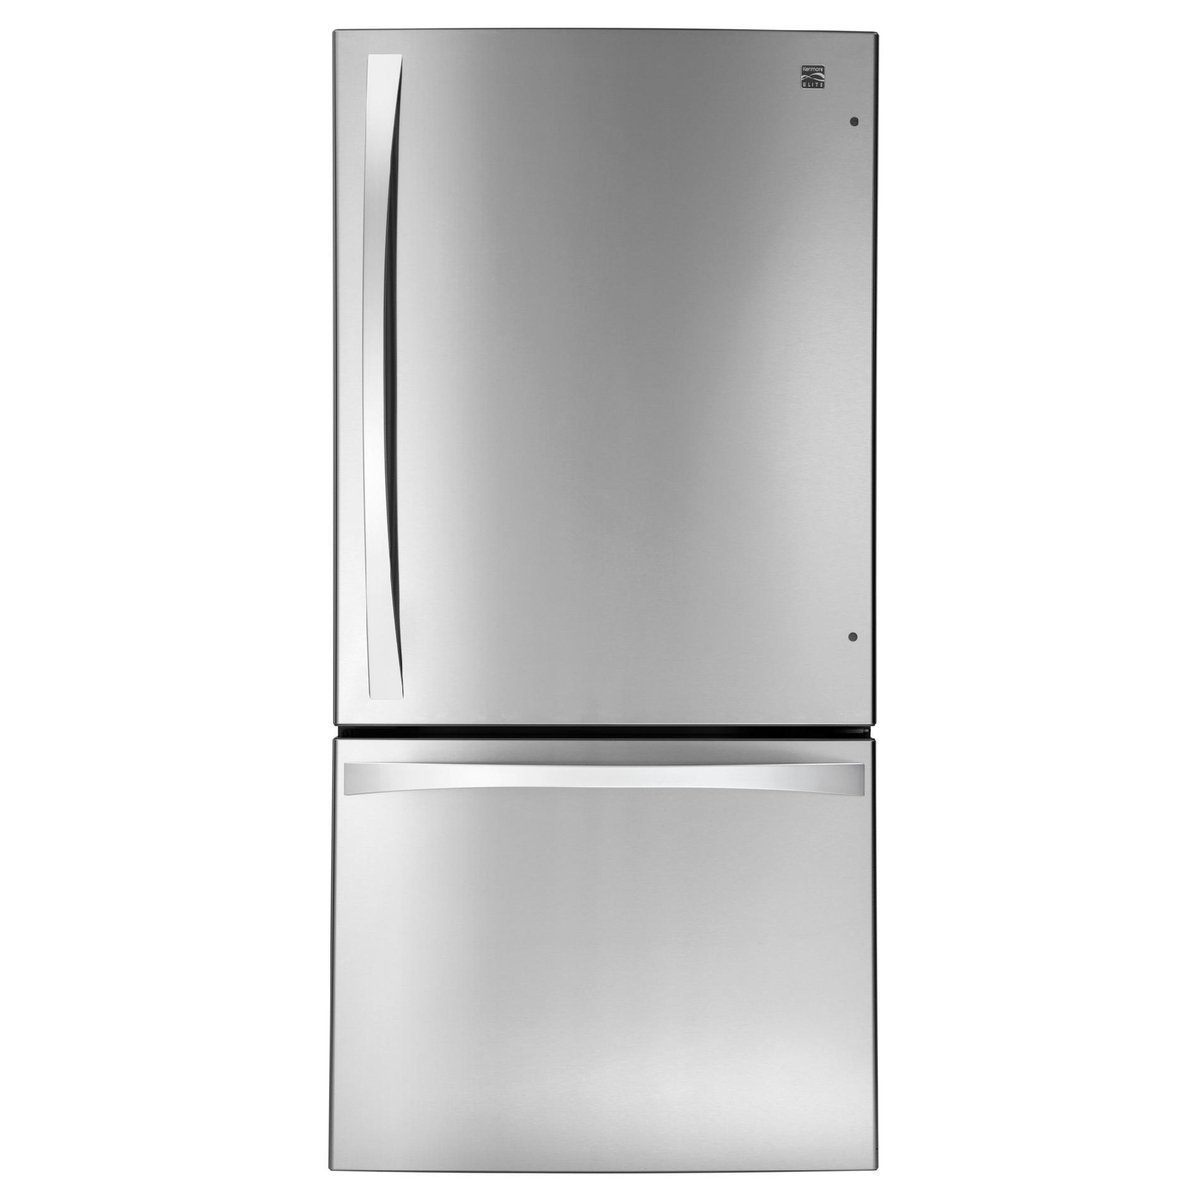 Kenmore Elite 24.1 cu. ft. Bottom Freezer Refrigerator and Kenmore Elite 5.6 cu. ft. Gas Range with True Convection bundle, both in Stainless Steel, includes delivery and hookup